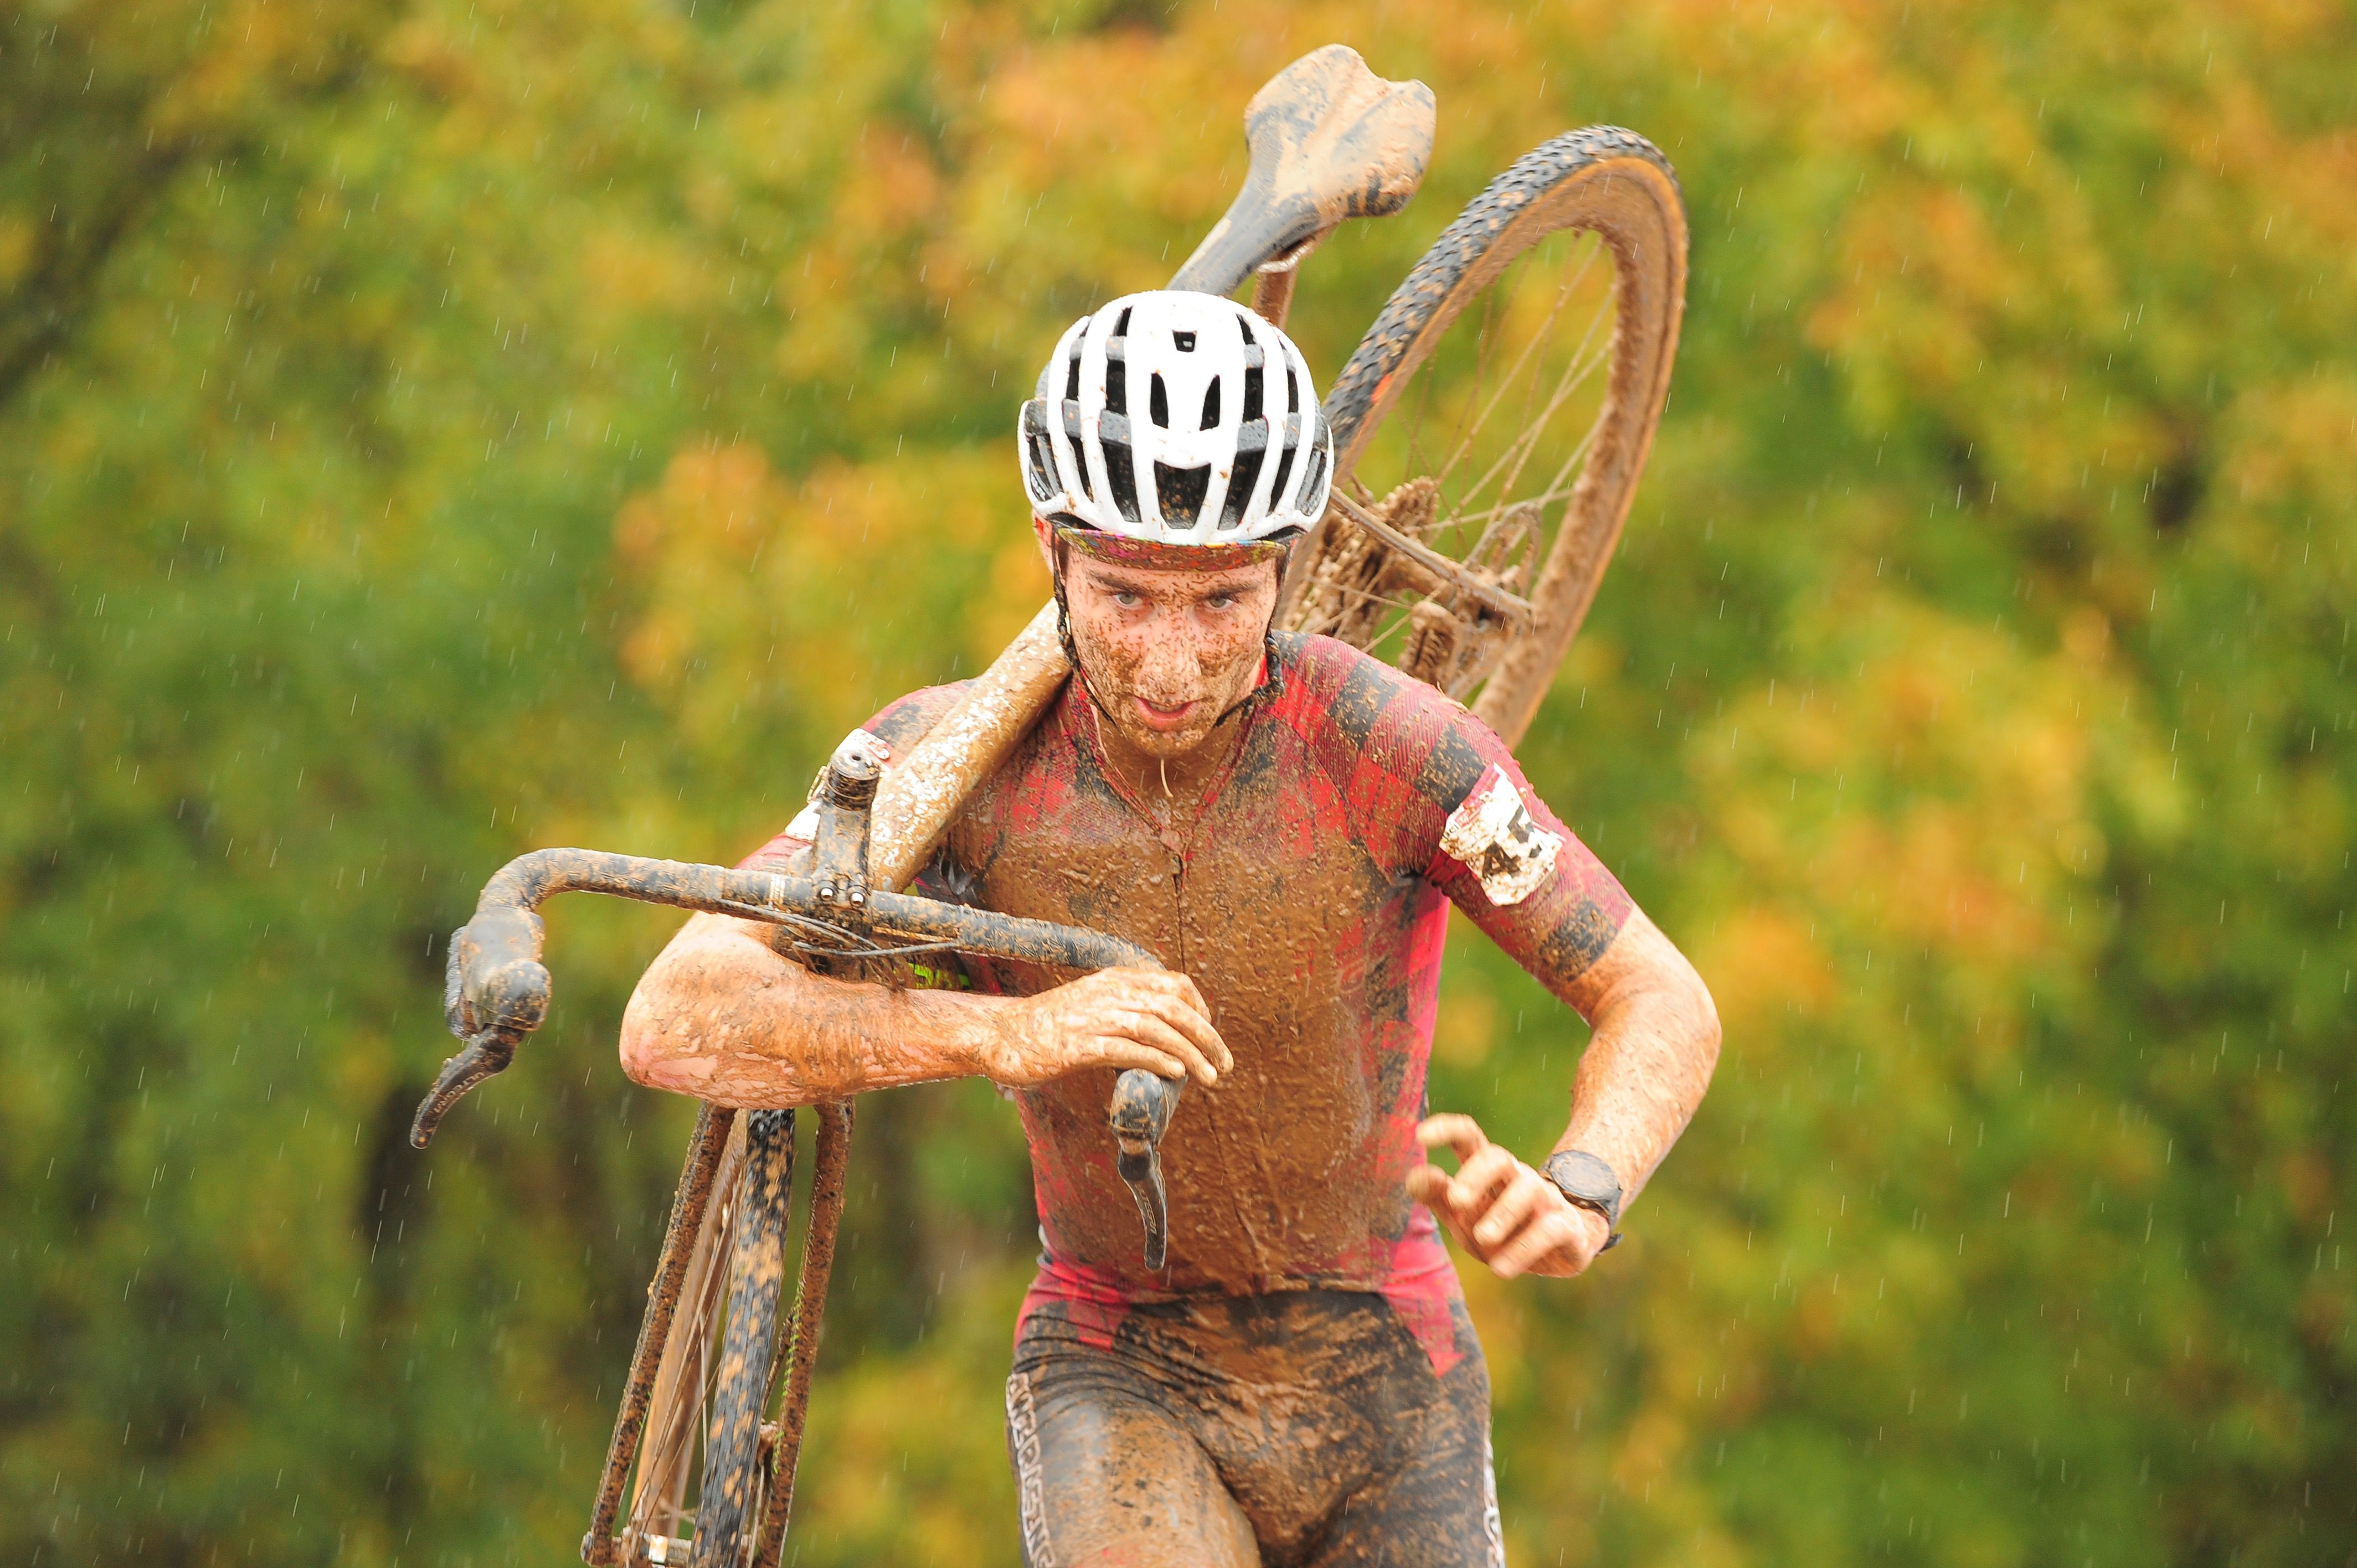 Muddy man carrying a bike up a set of stairs in the rain.